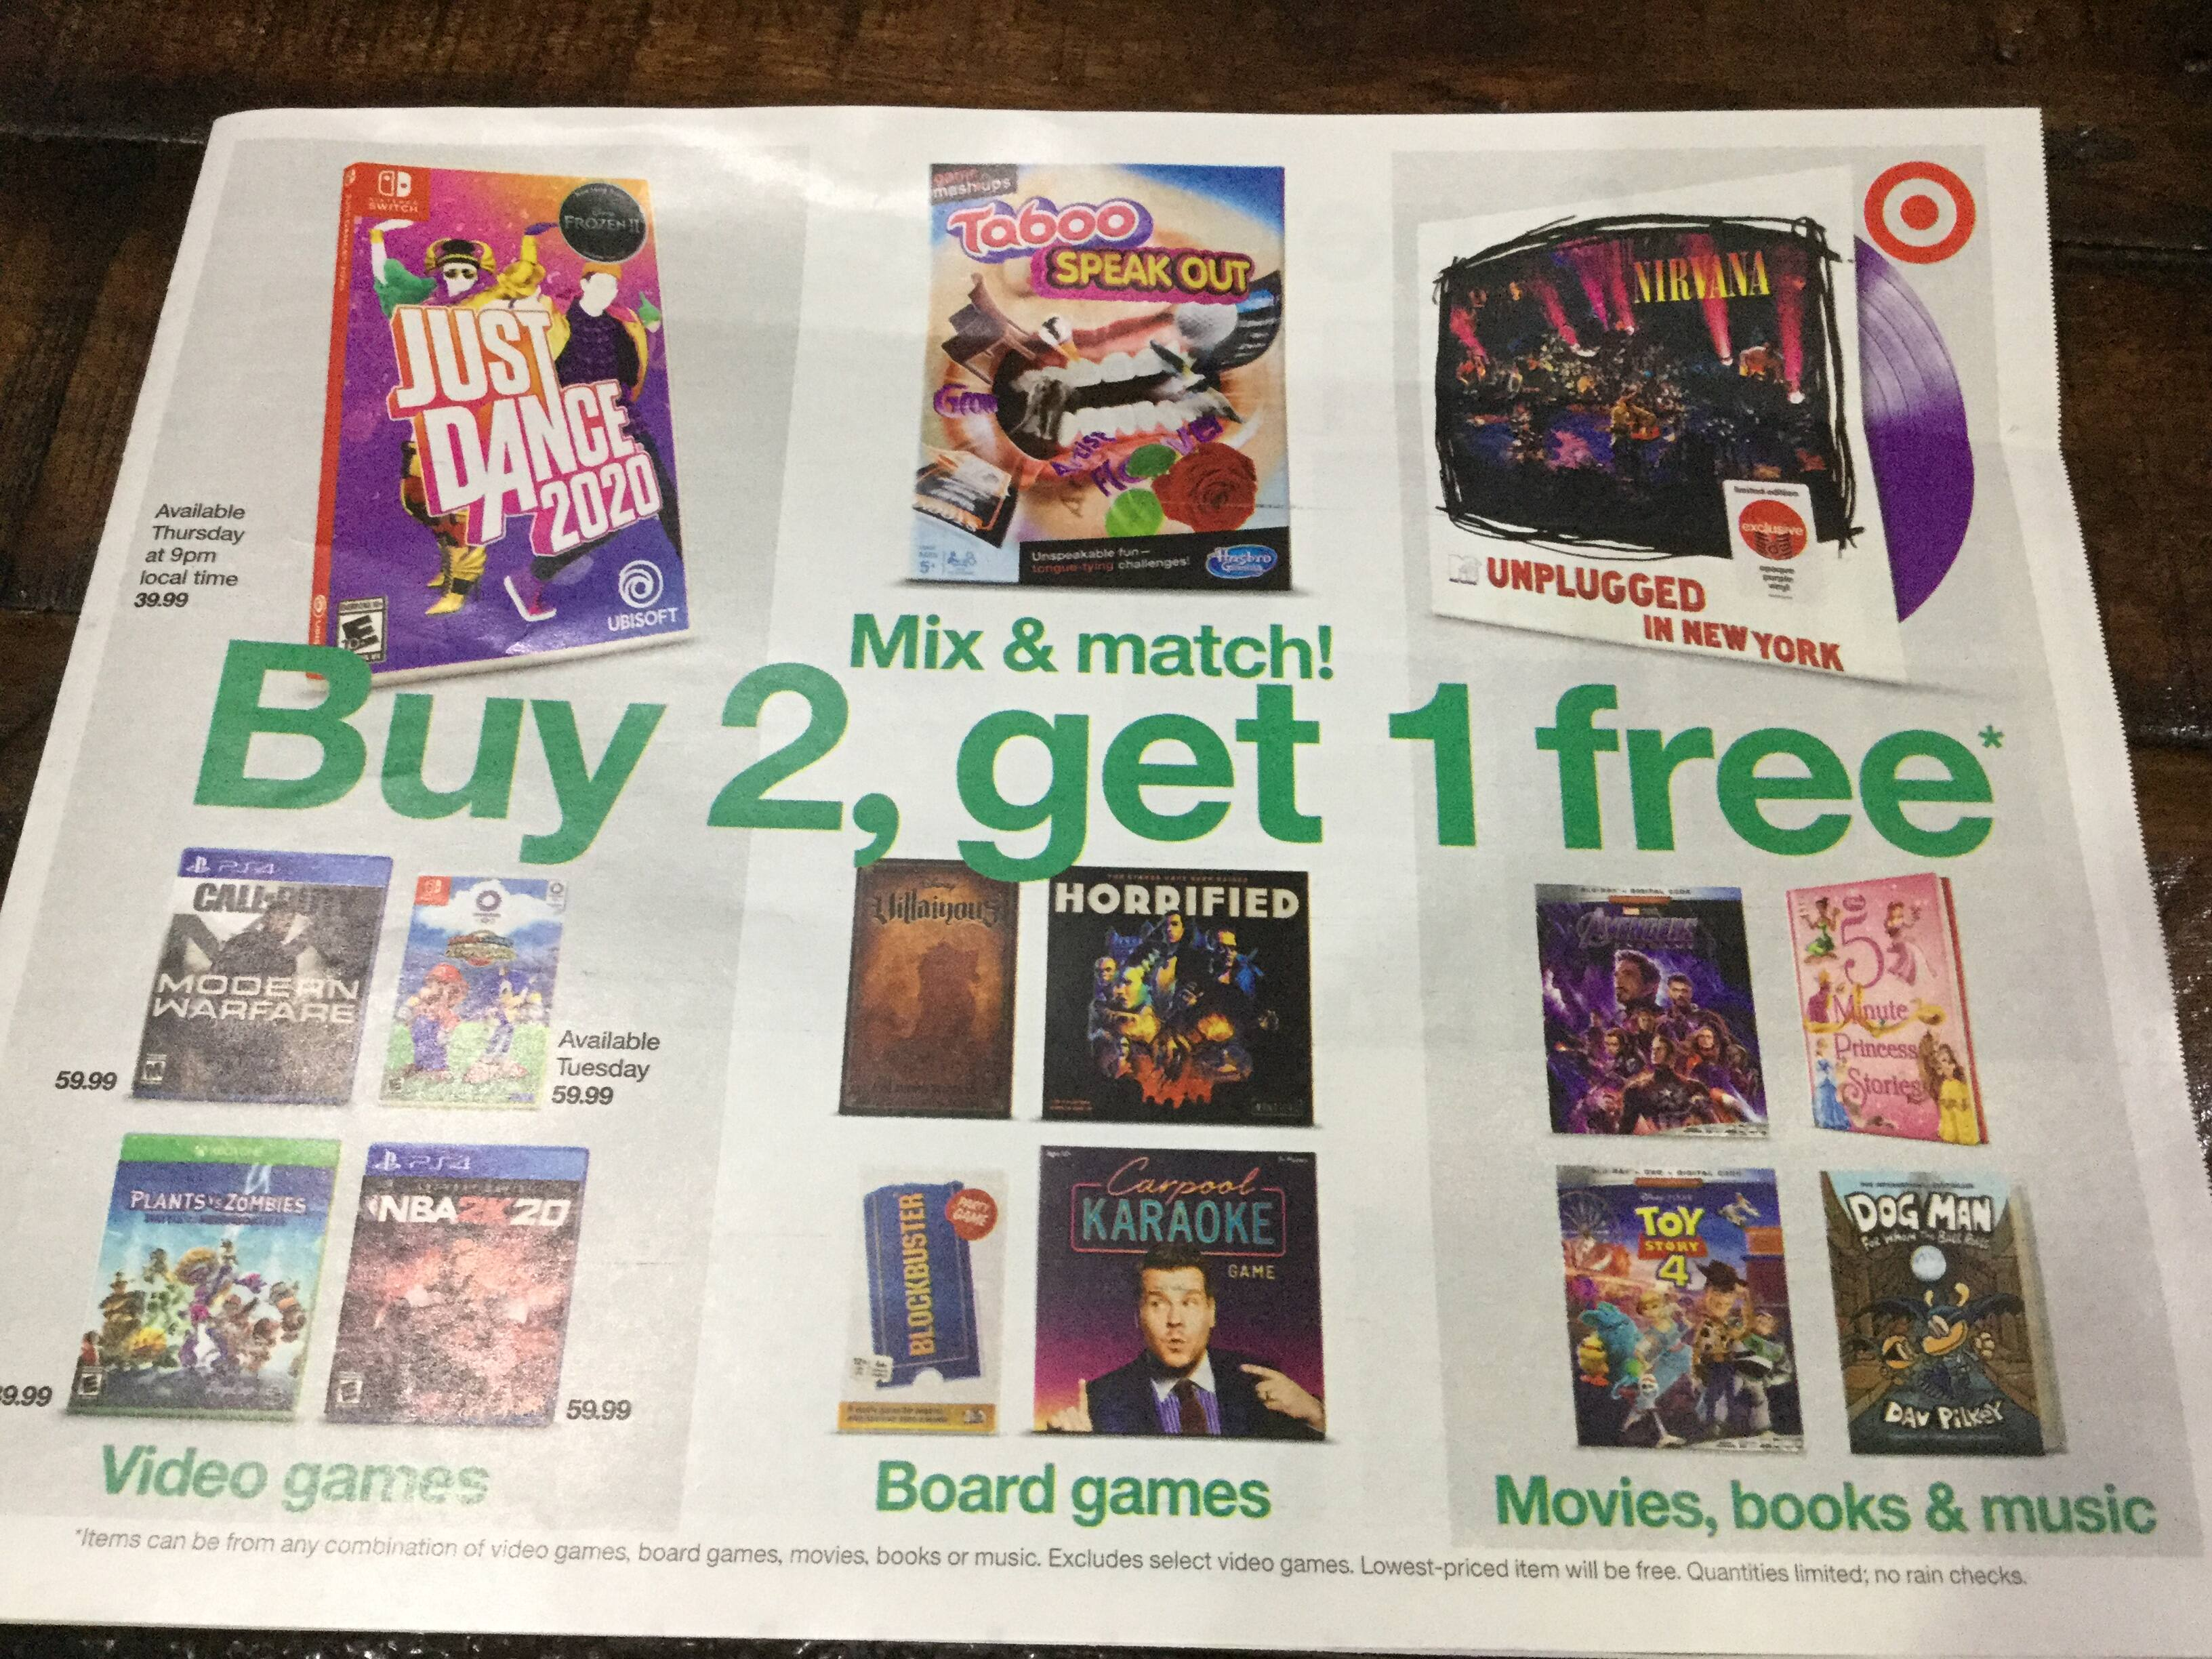 Target - B2 G1 Free - Mix&Match - Video games, board game, movies books & music - Nov 3 thru Nov 9